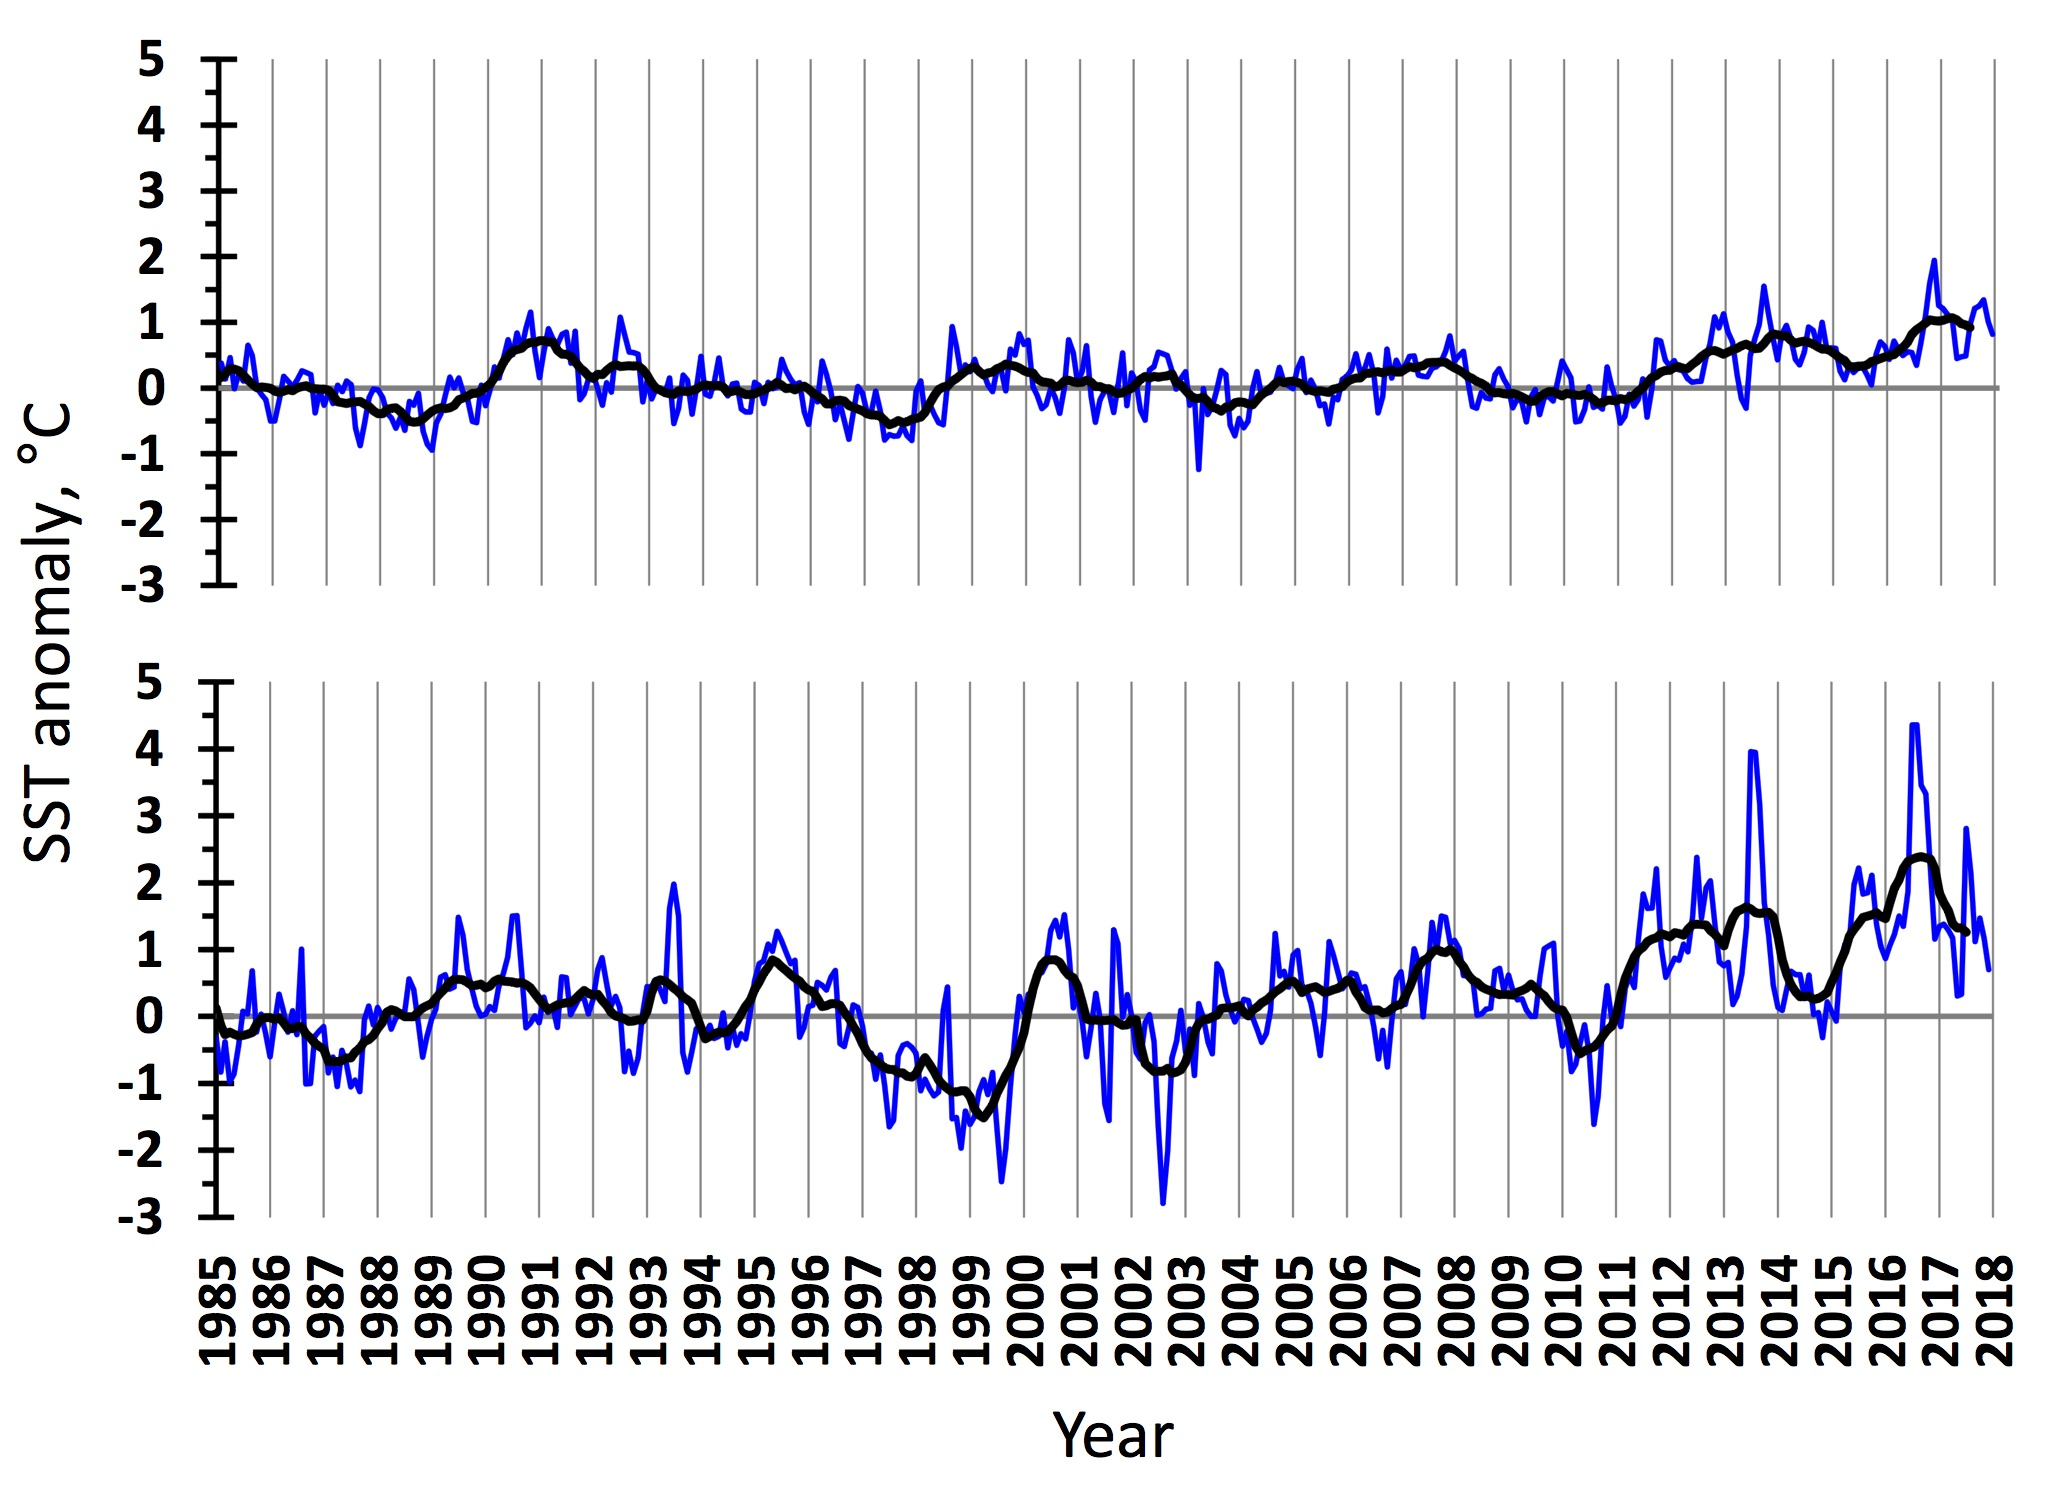 Figure 3.1.8. Sea surface temperature anomalies in the western (upper) and eastern (lower) Barents Sea in 1985–2017. The blue line shows monthly values, the black one – 11-month running means.